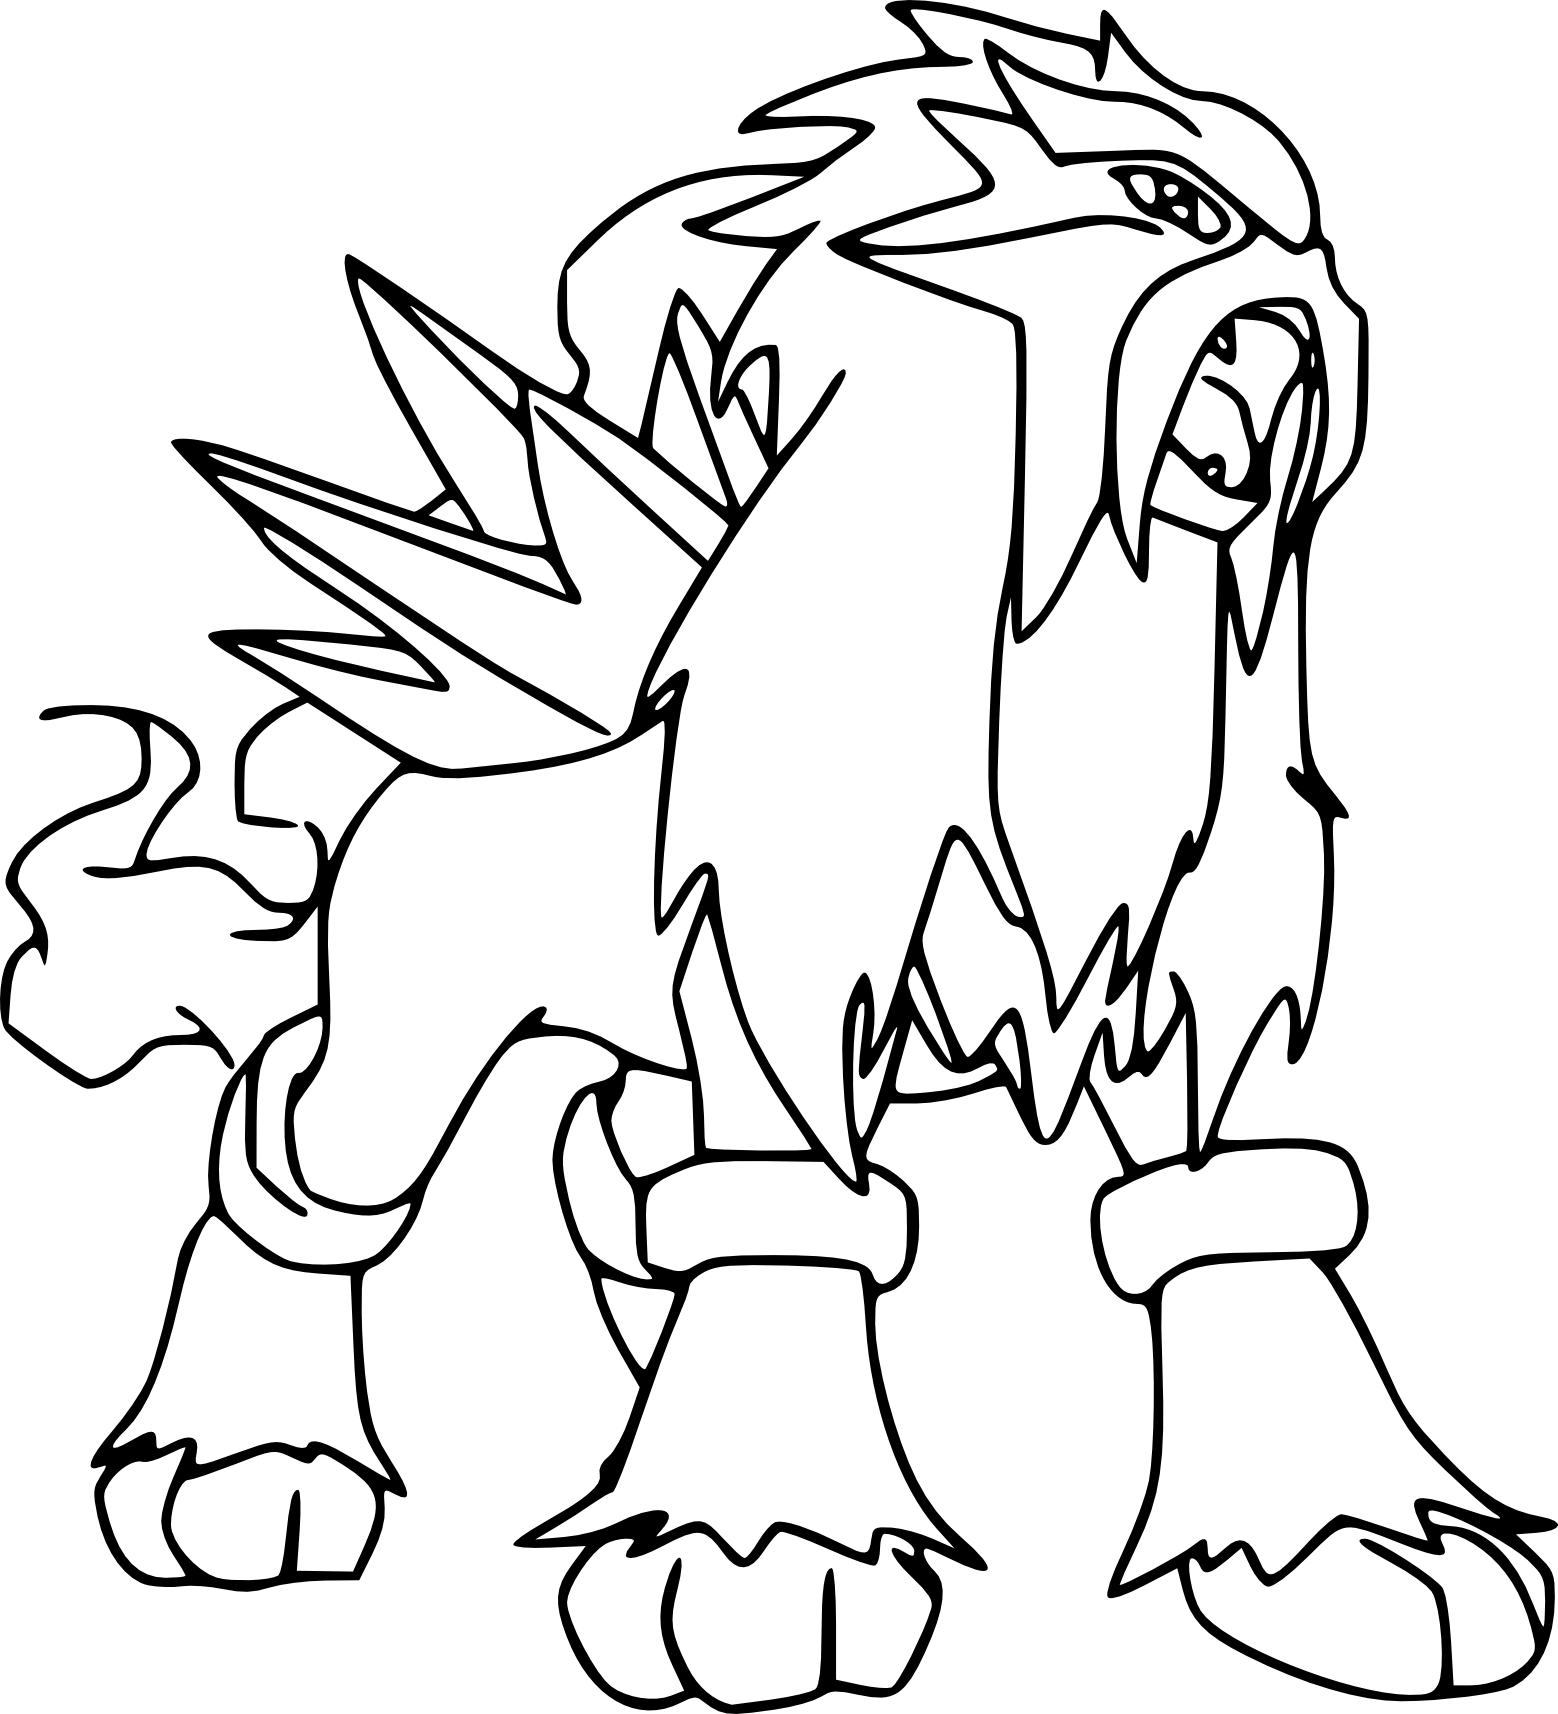 Coloriage pokemon generation 6 - Coloriage de pokemon a imprimer ...